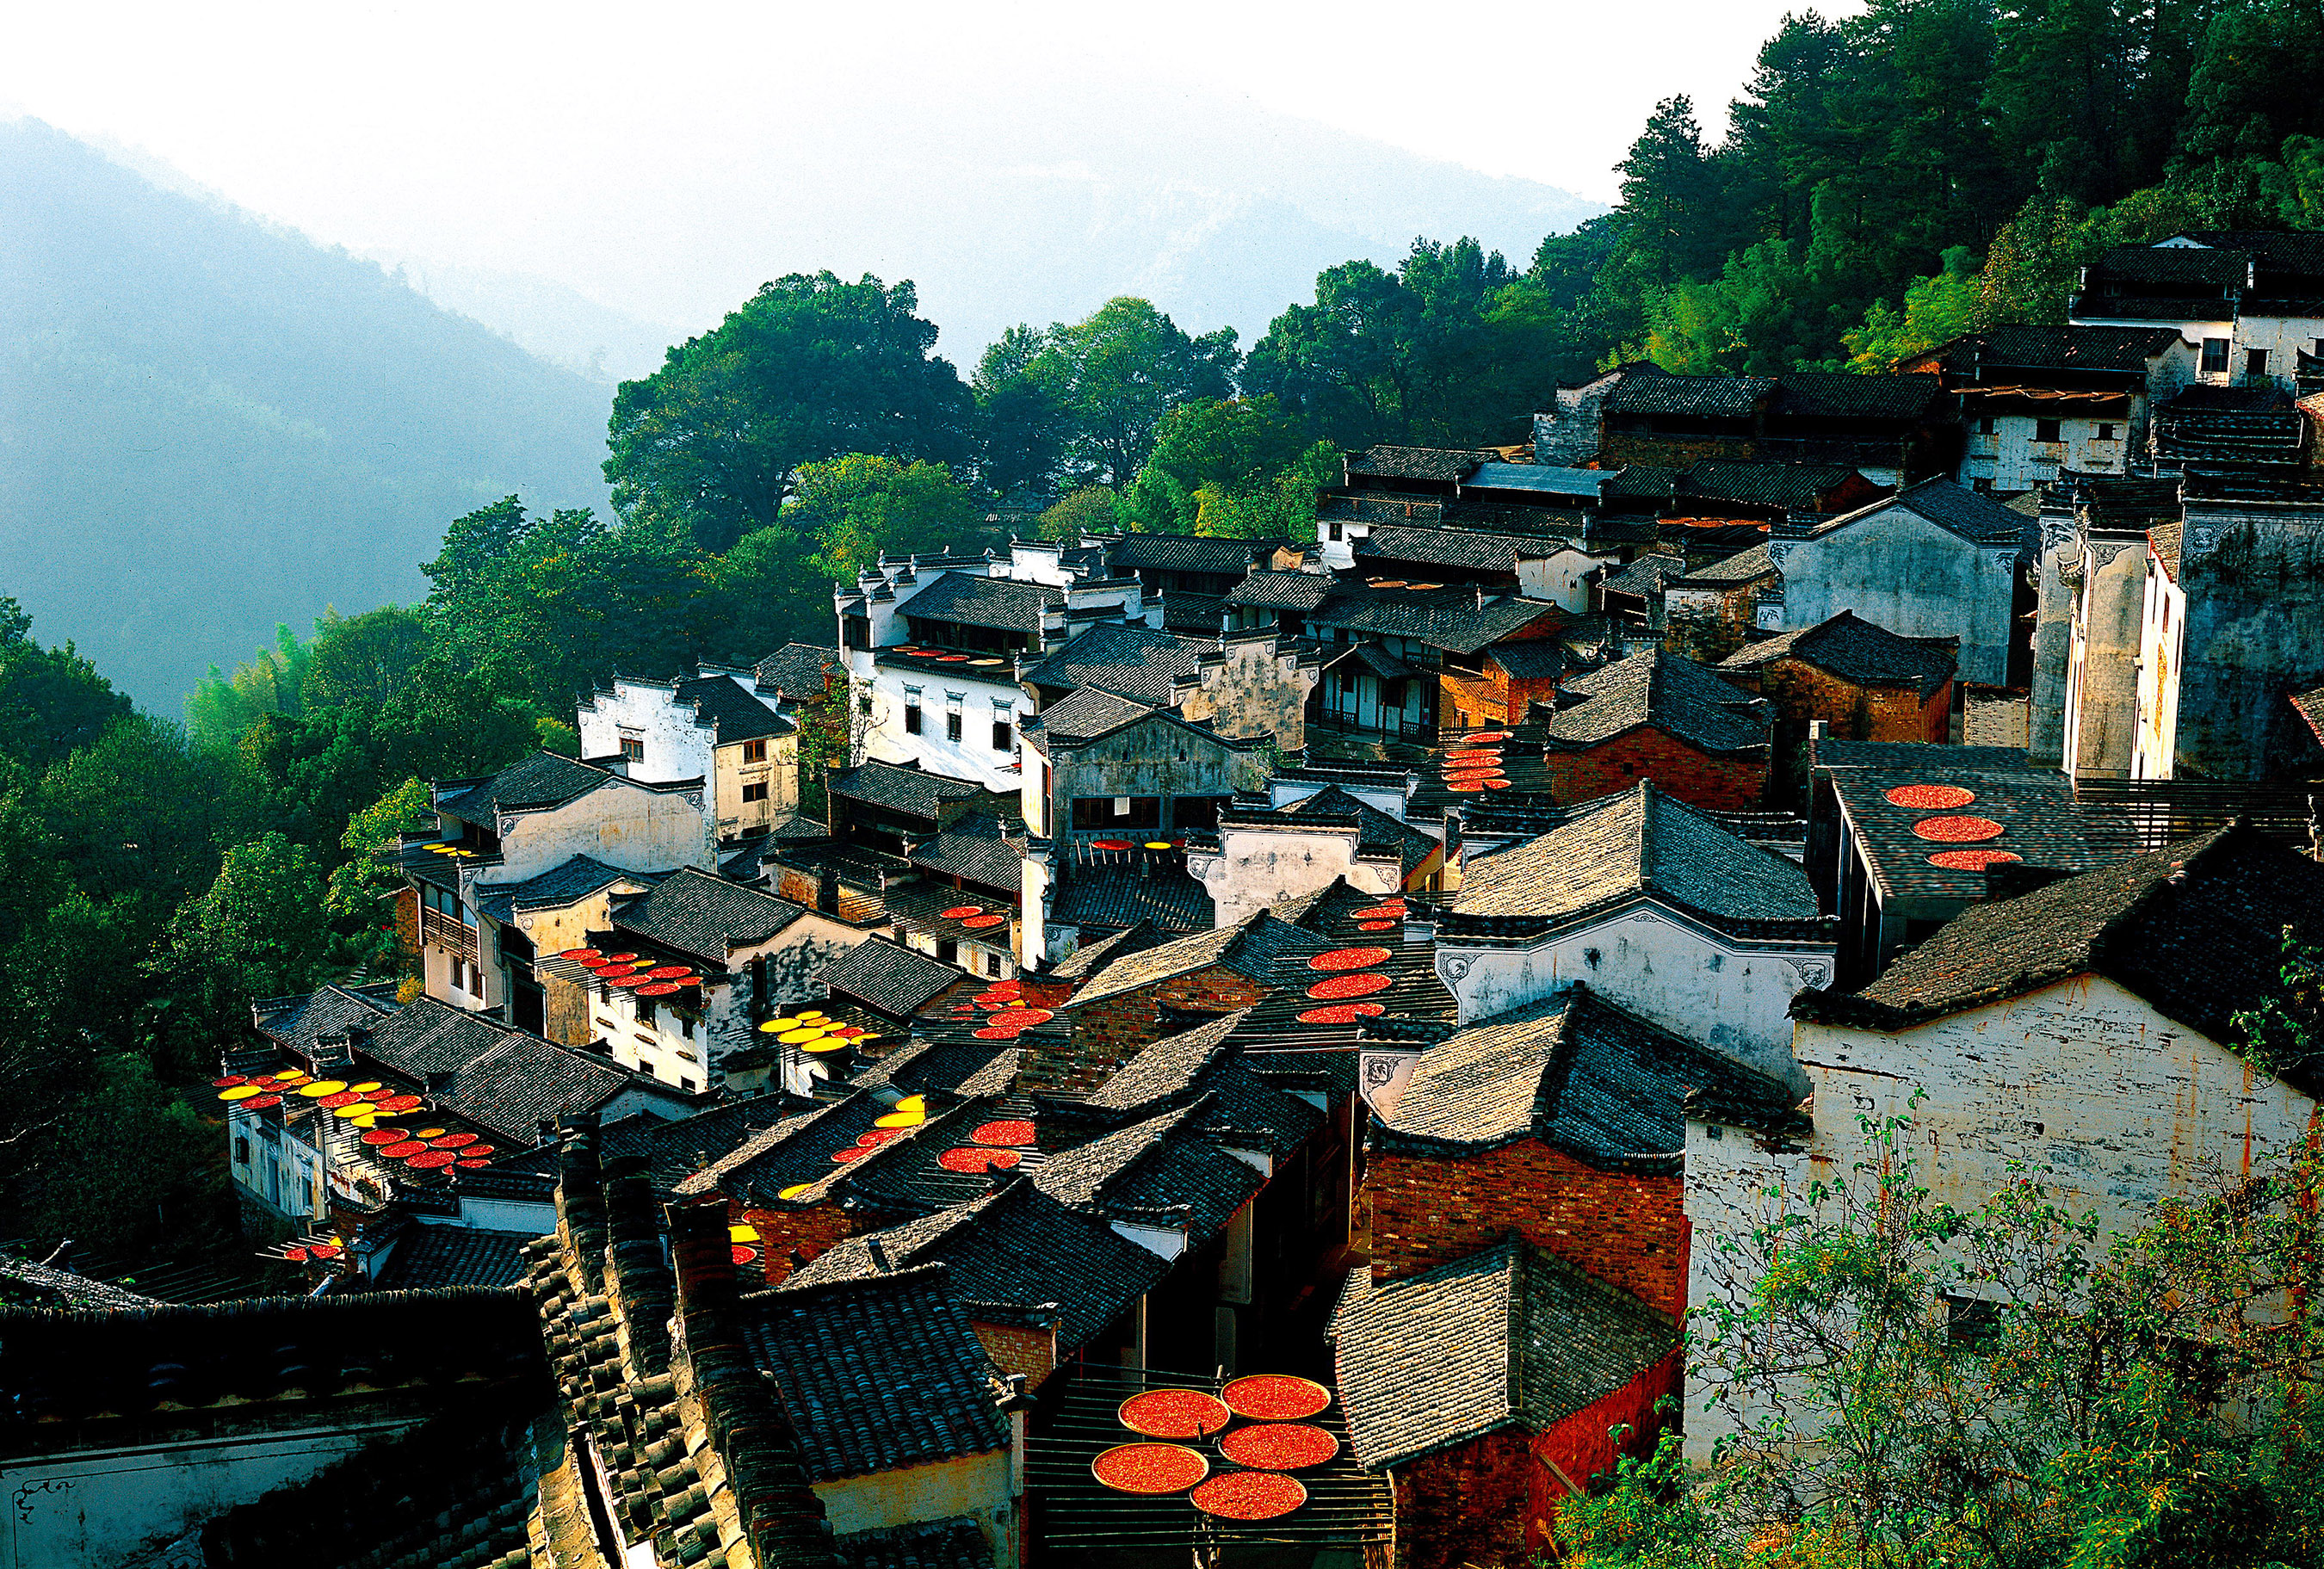 Huangling village has preserved and maintained the ancient Hui-style architectures with a history of more than 500 years